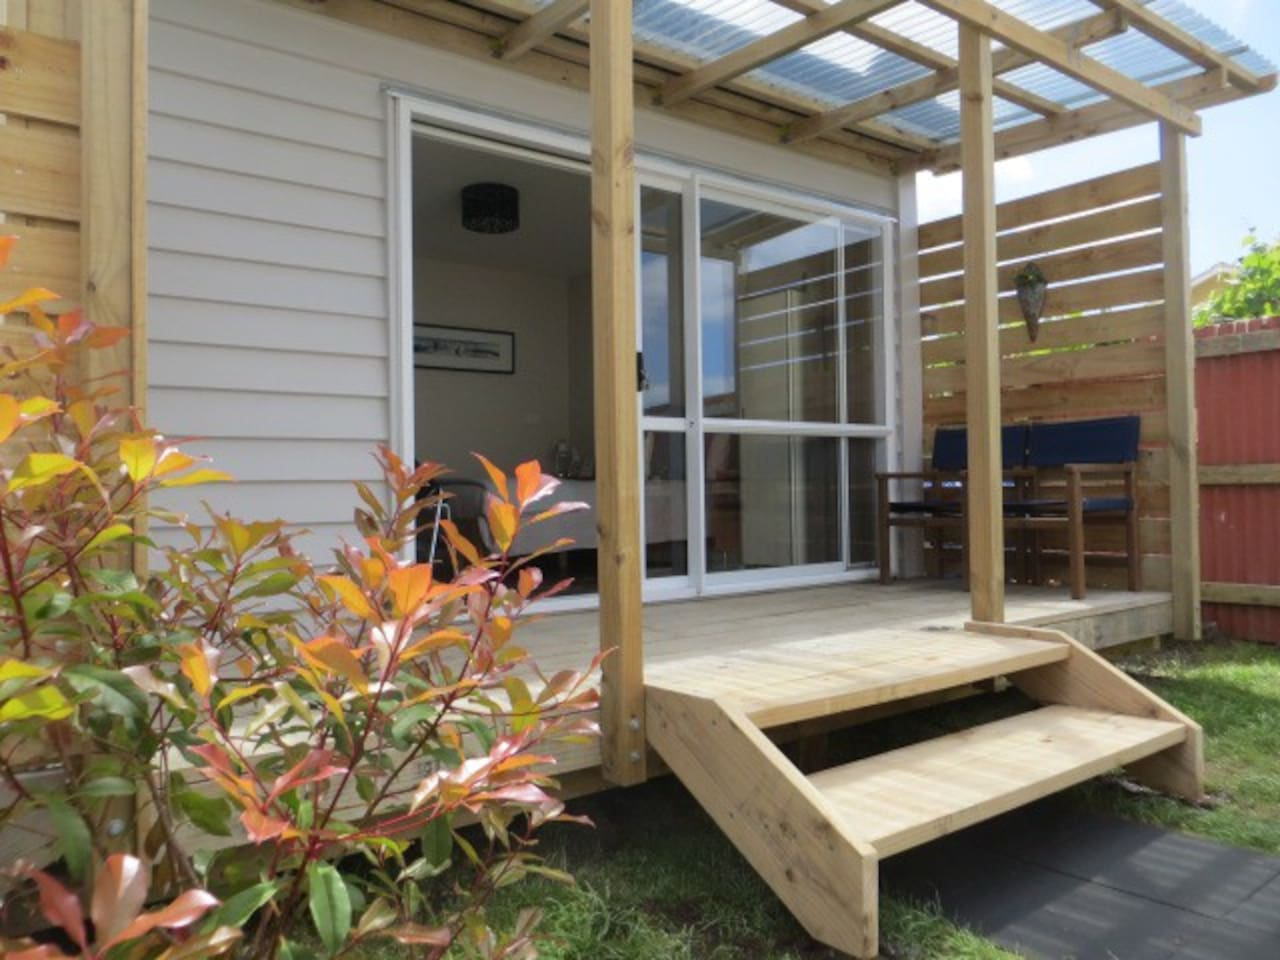 Cute private cabin with ensuite, kichenette and own garden. Right in the middle of Paeroa town.